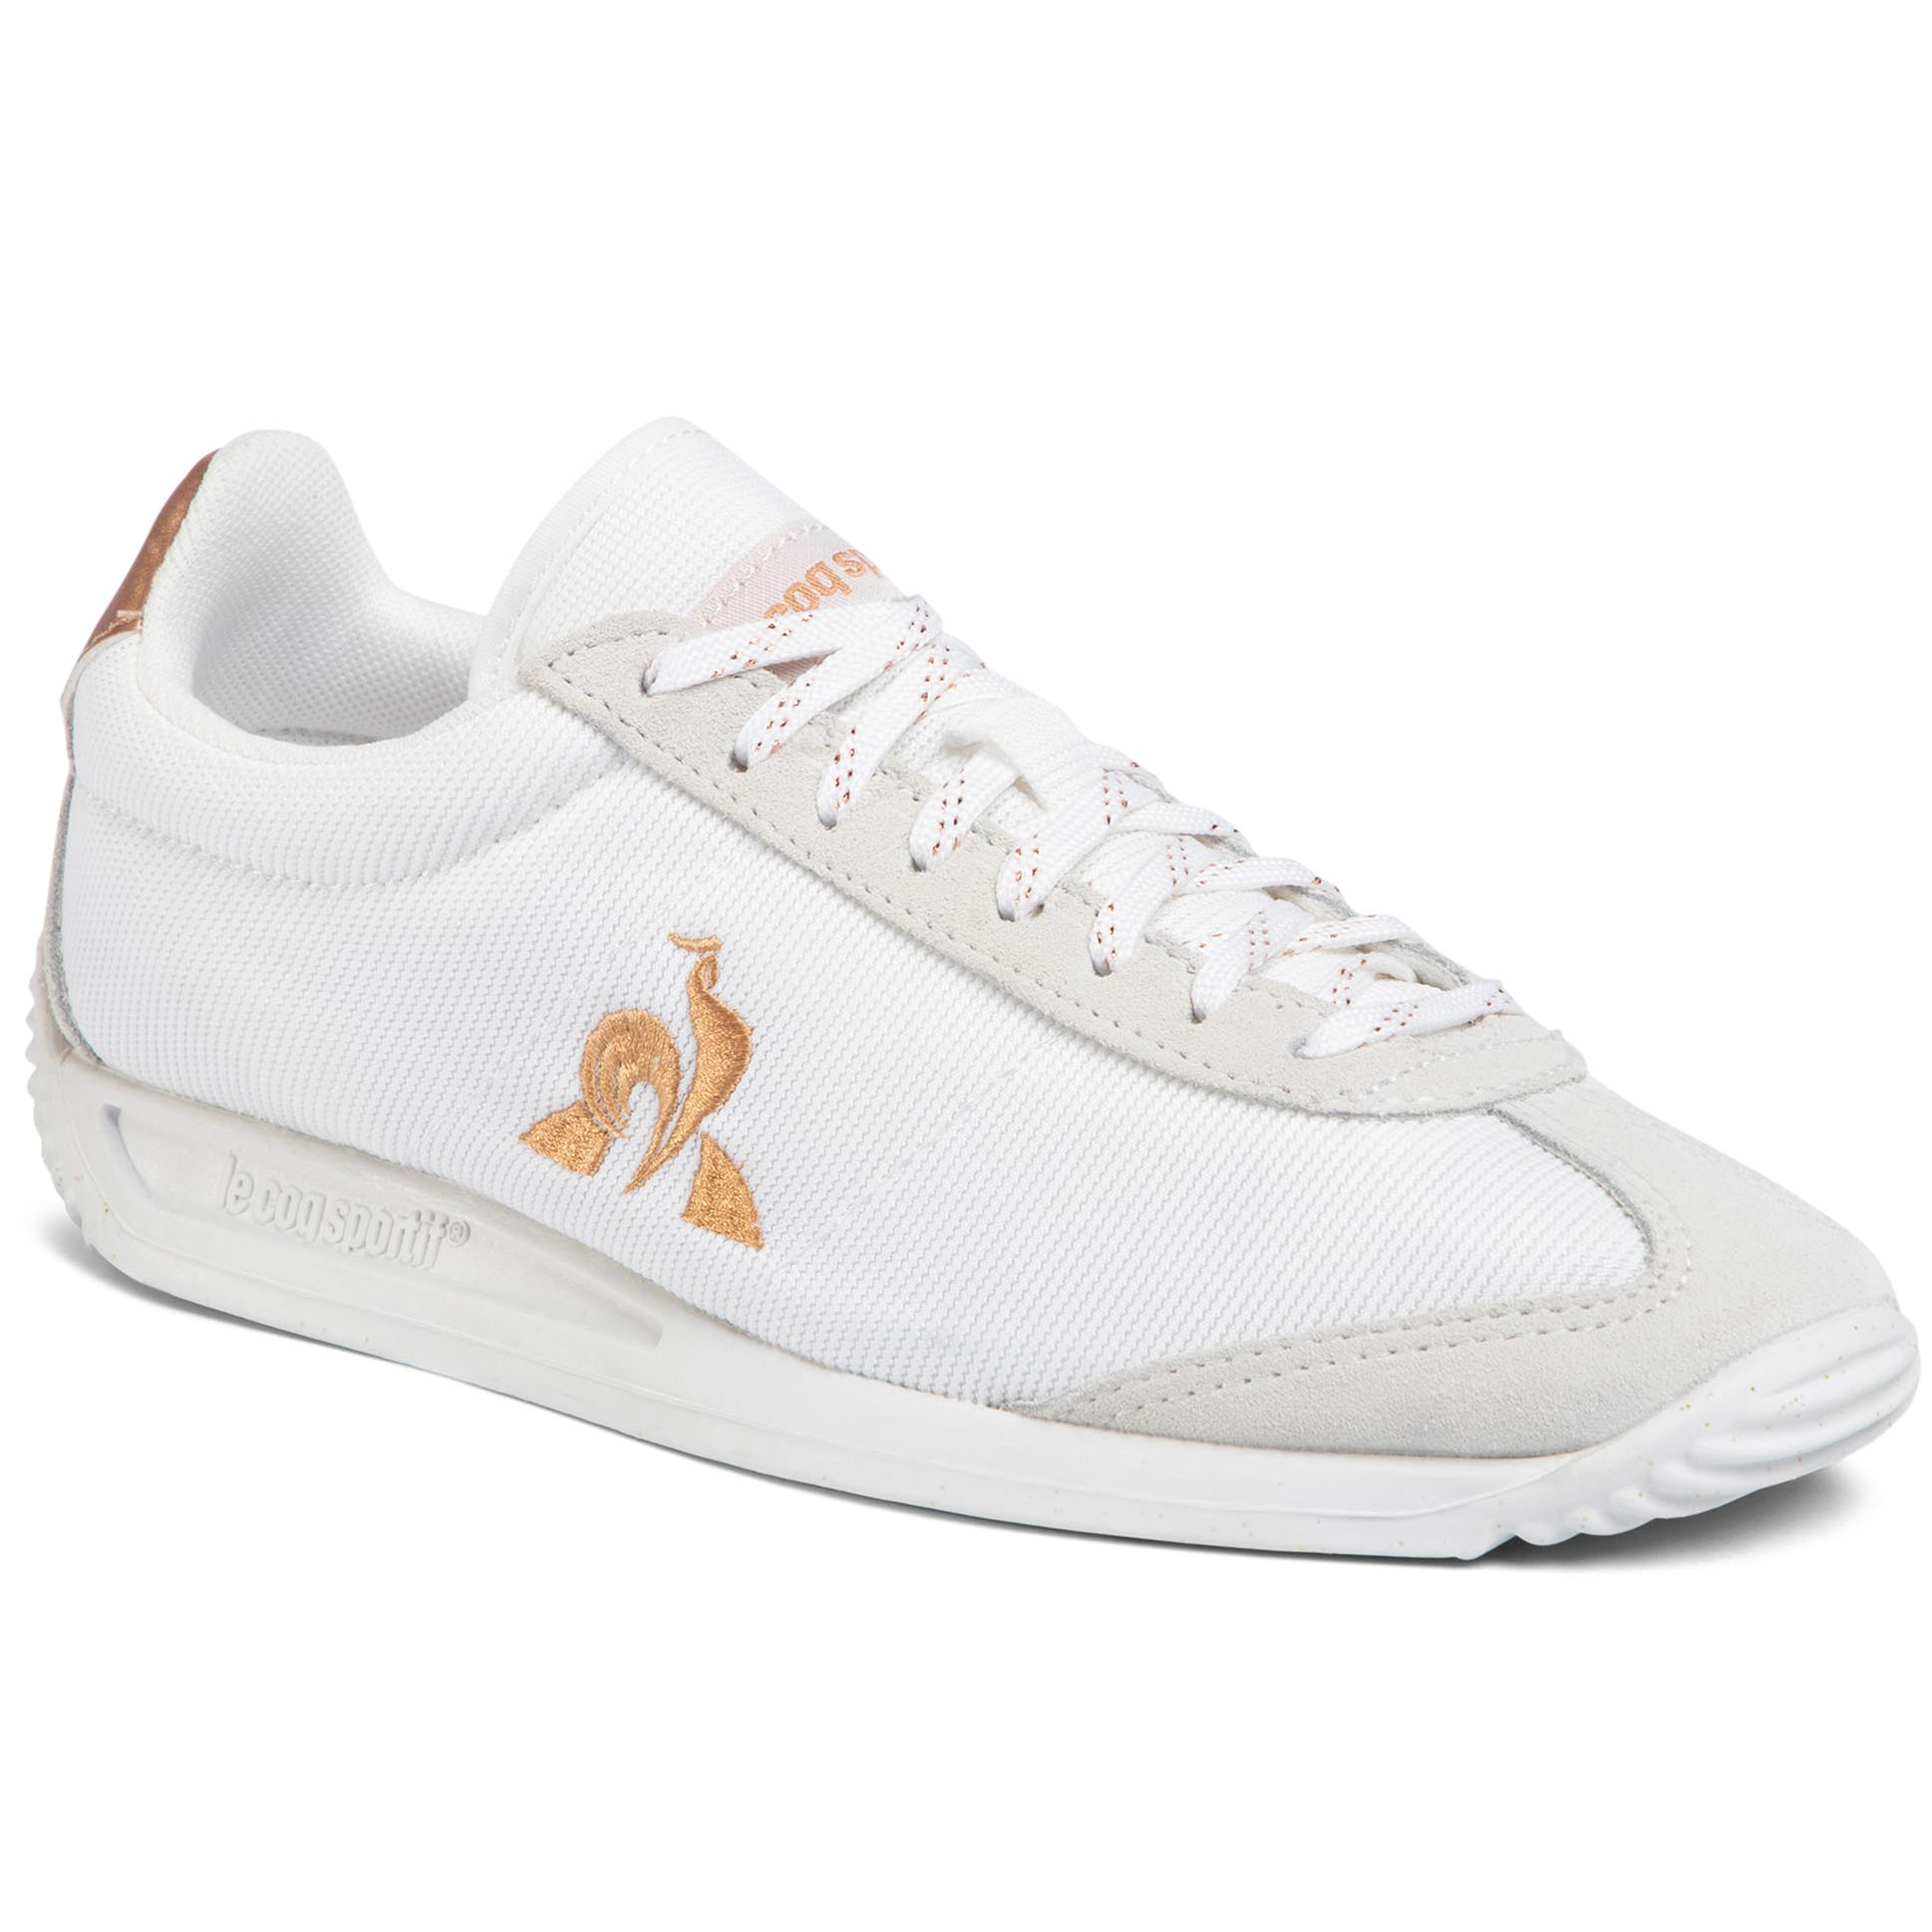 Sneakers LE COQ SPORTIF - Quartz W 2010330 Optical White/Rose Gold